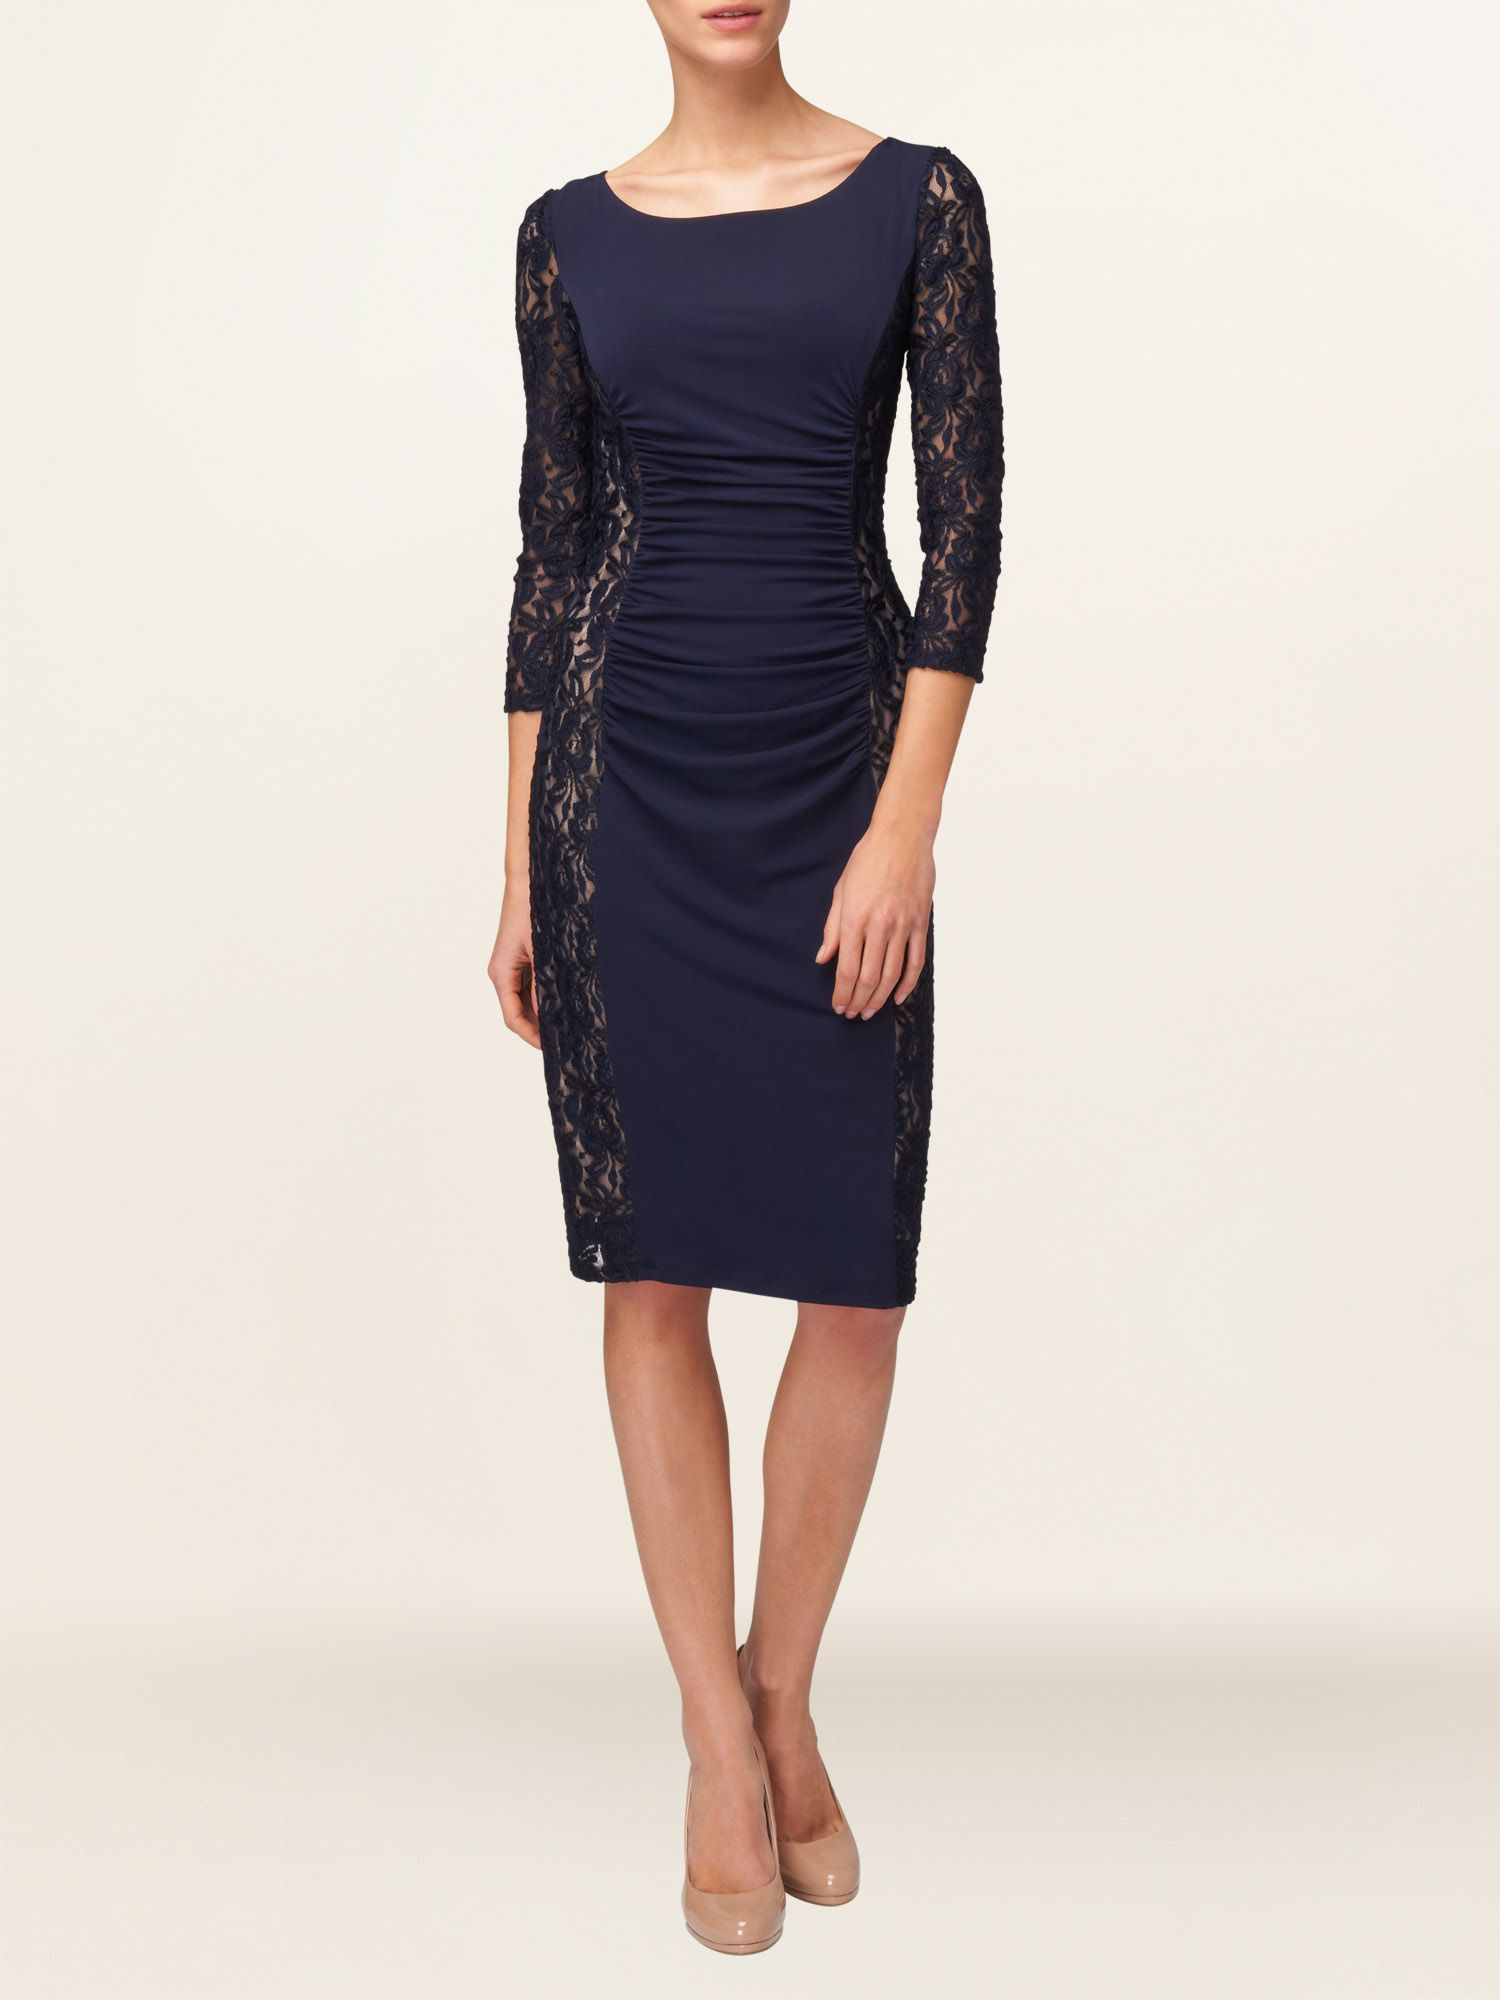 Latoya lace miracle dress